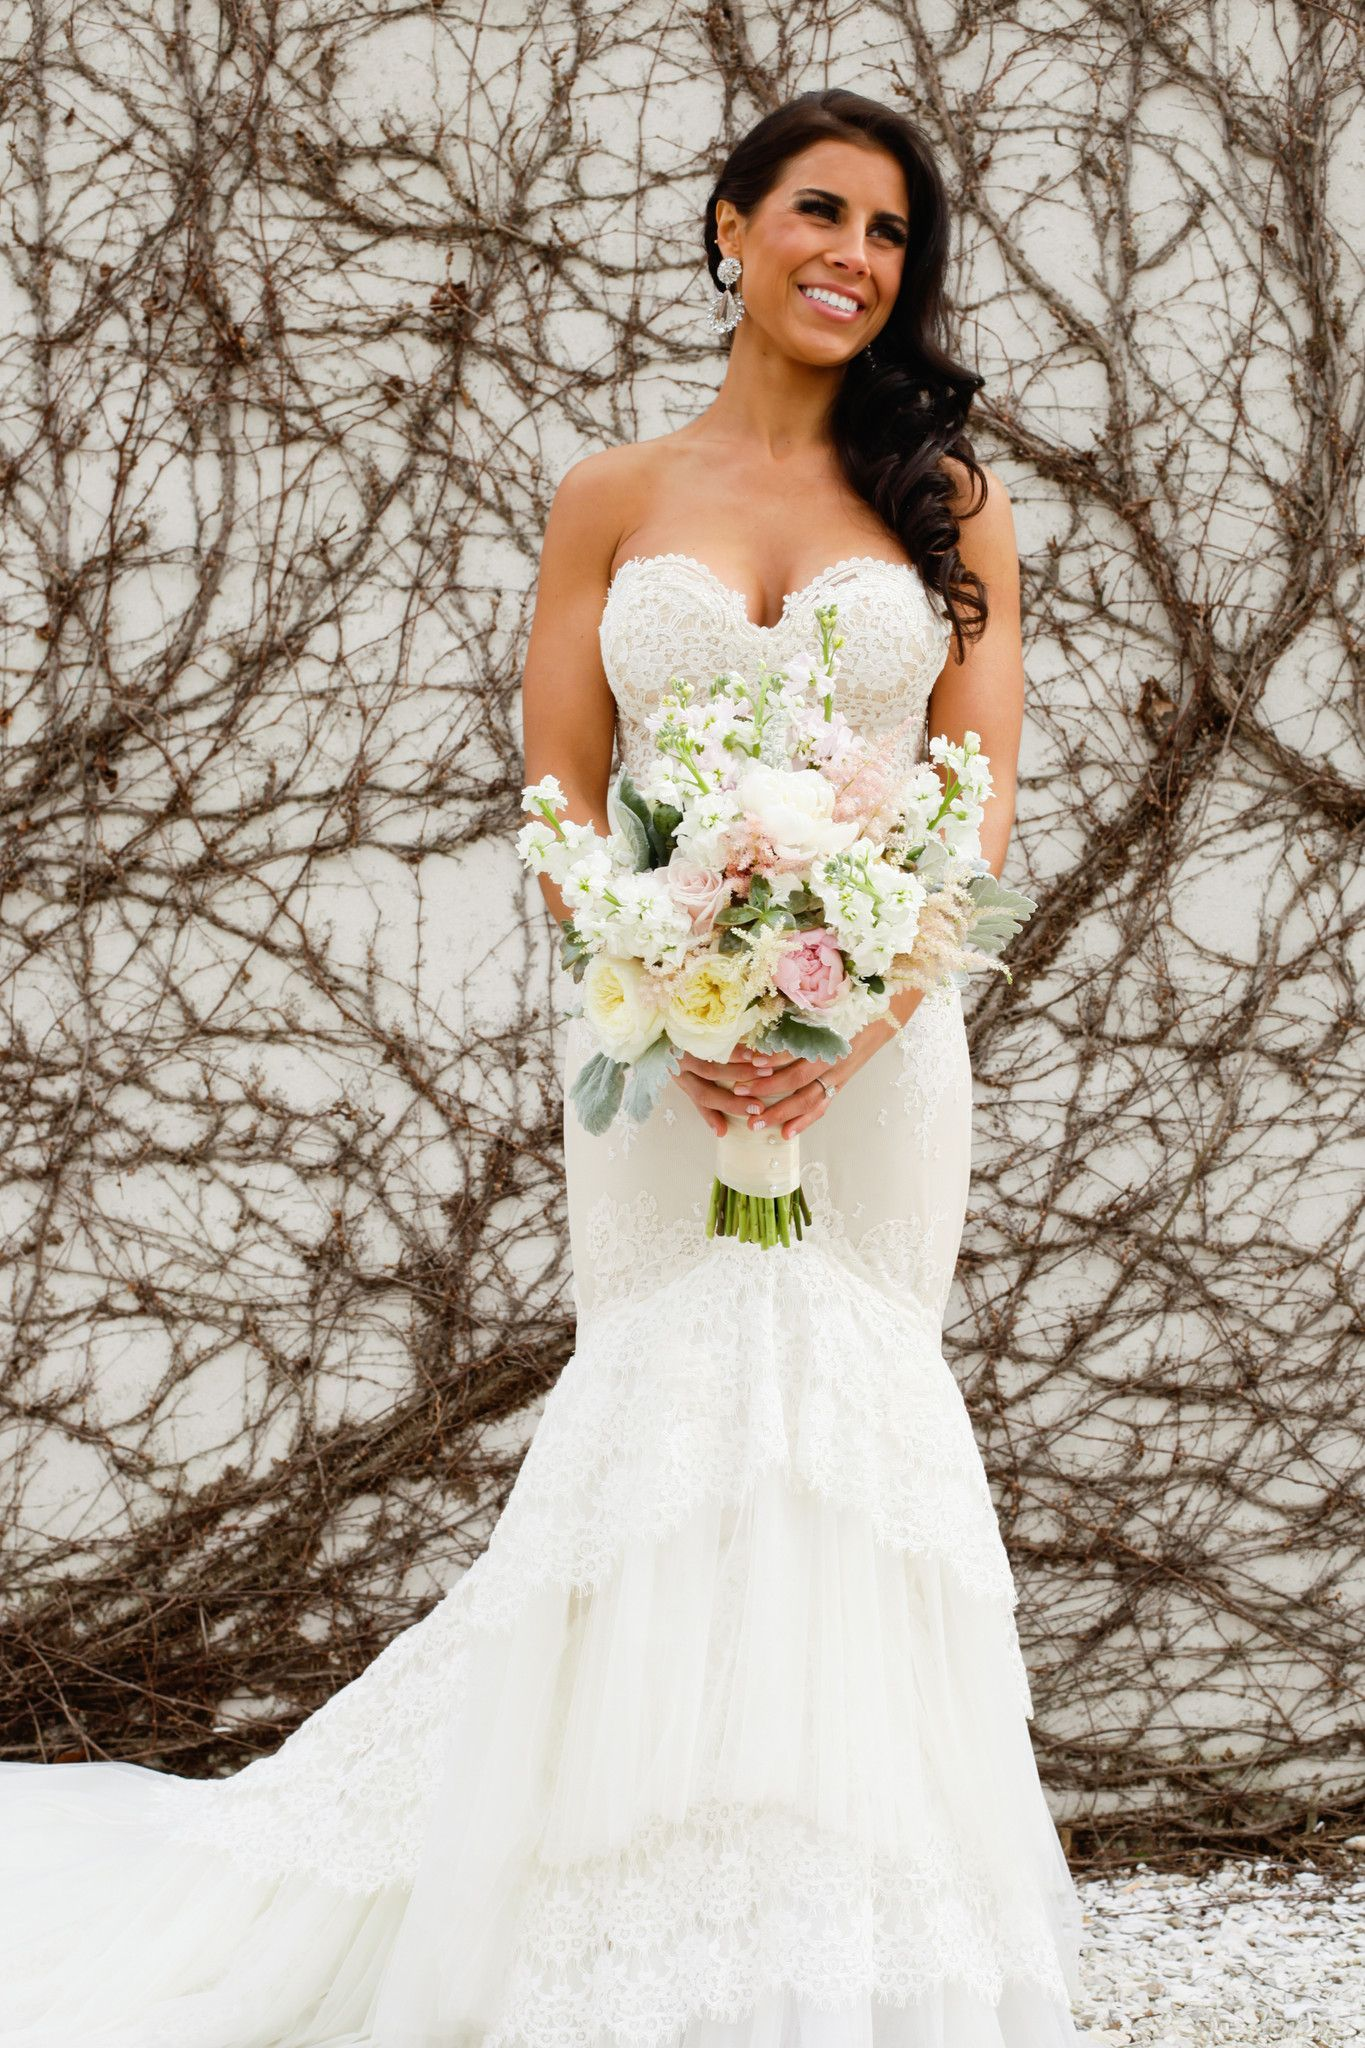 One of a kind wedding dresses  Inbal Dror Custom Gown  Inbal dror Gowns and Winter weddings